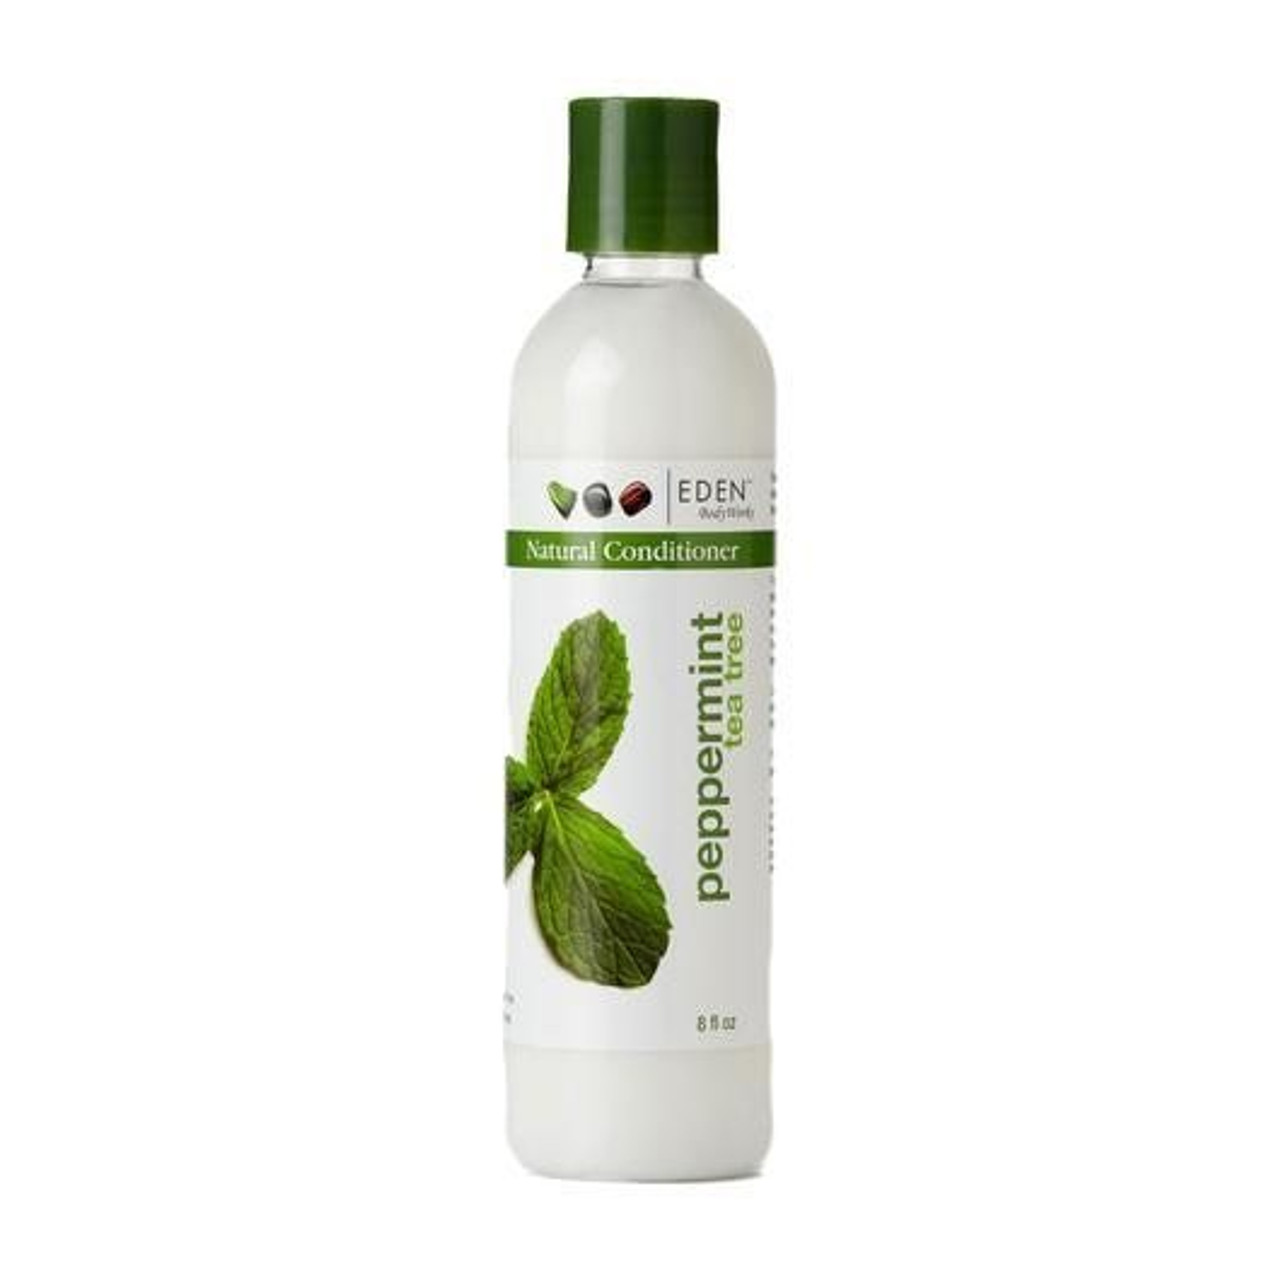 Eden-ABS Peppermint Tea Tree Shampoo 8 oz.